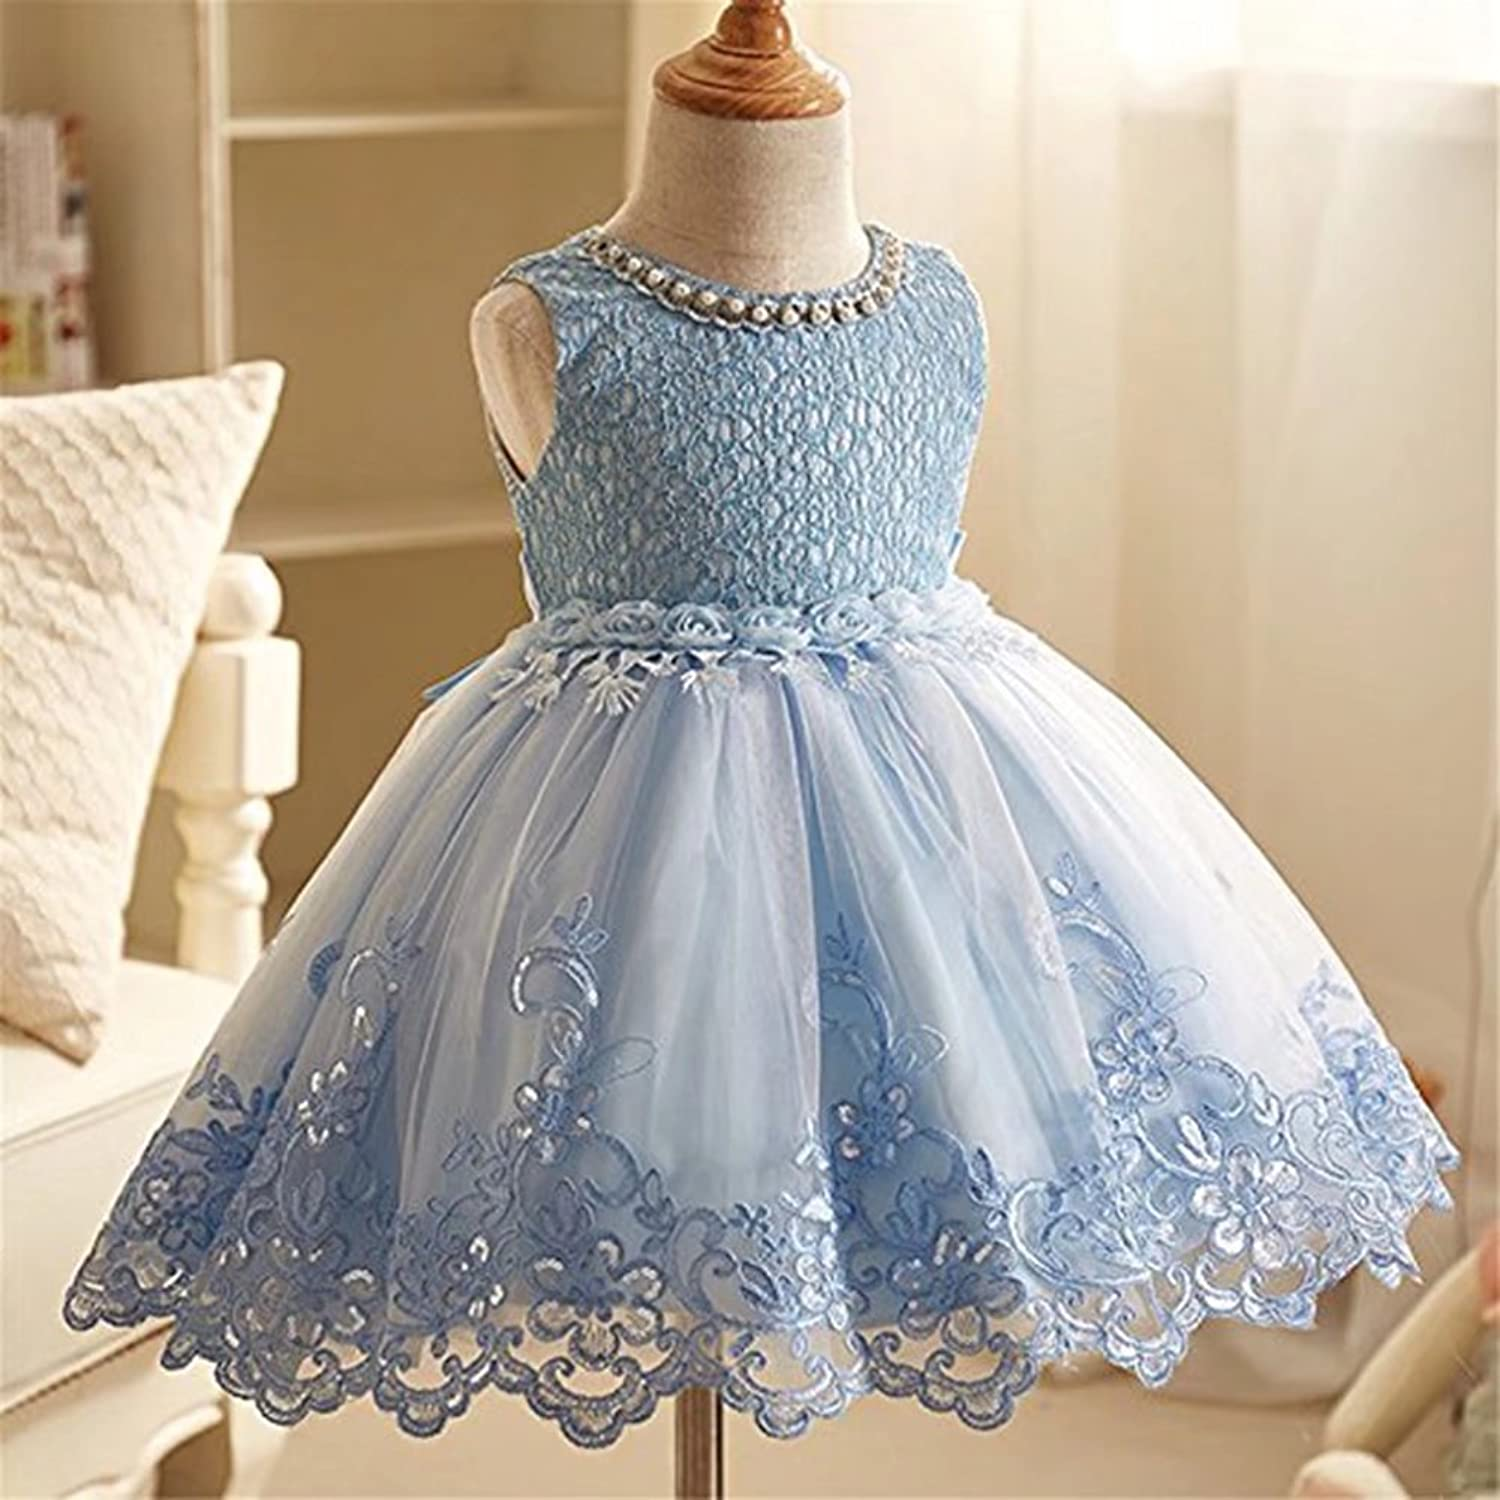 Amazon.com: ZaH Girl Party Dress Kids Ruffles Lace Party Wedding ...